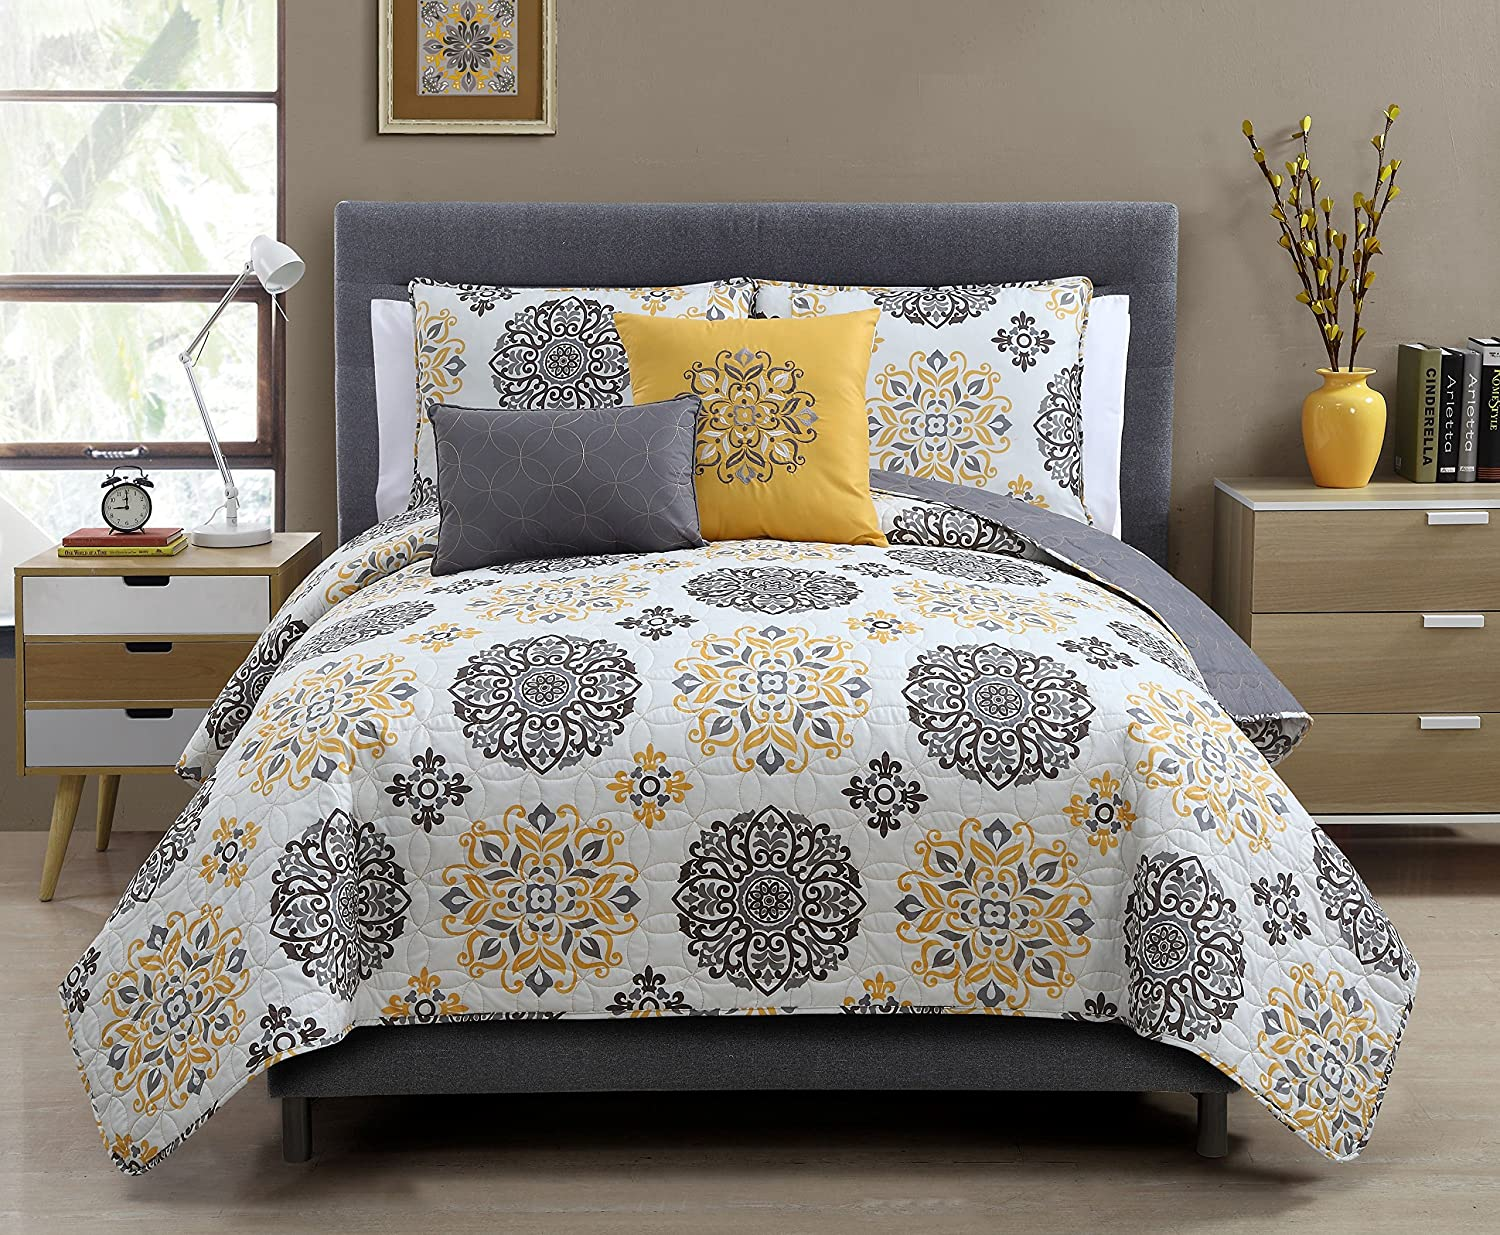 size iron bedspread comforter for quilt quilts headboard queen headboards bed daybed and bedding metal king sets beds